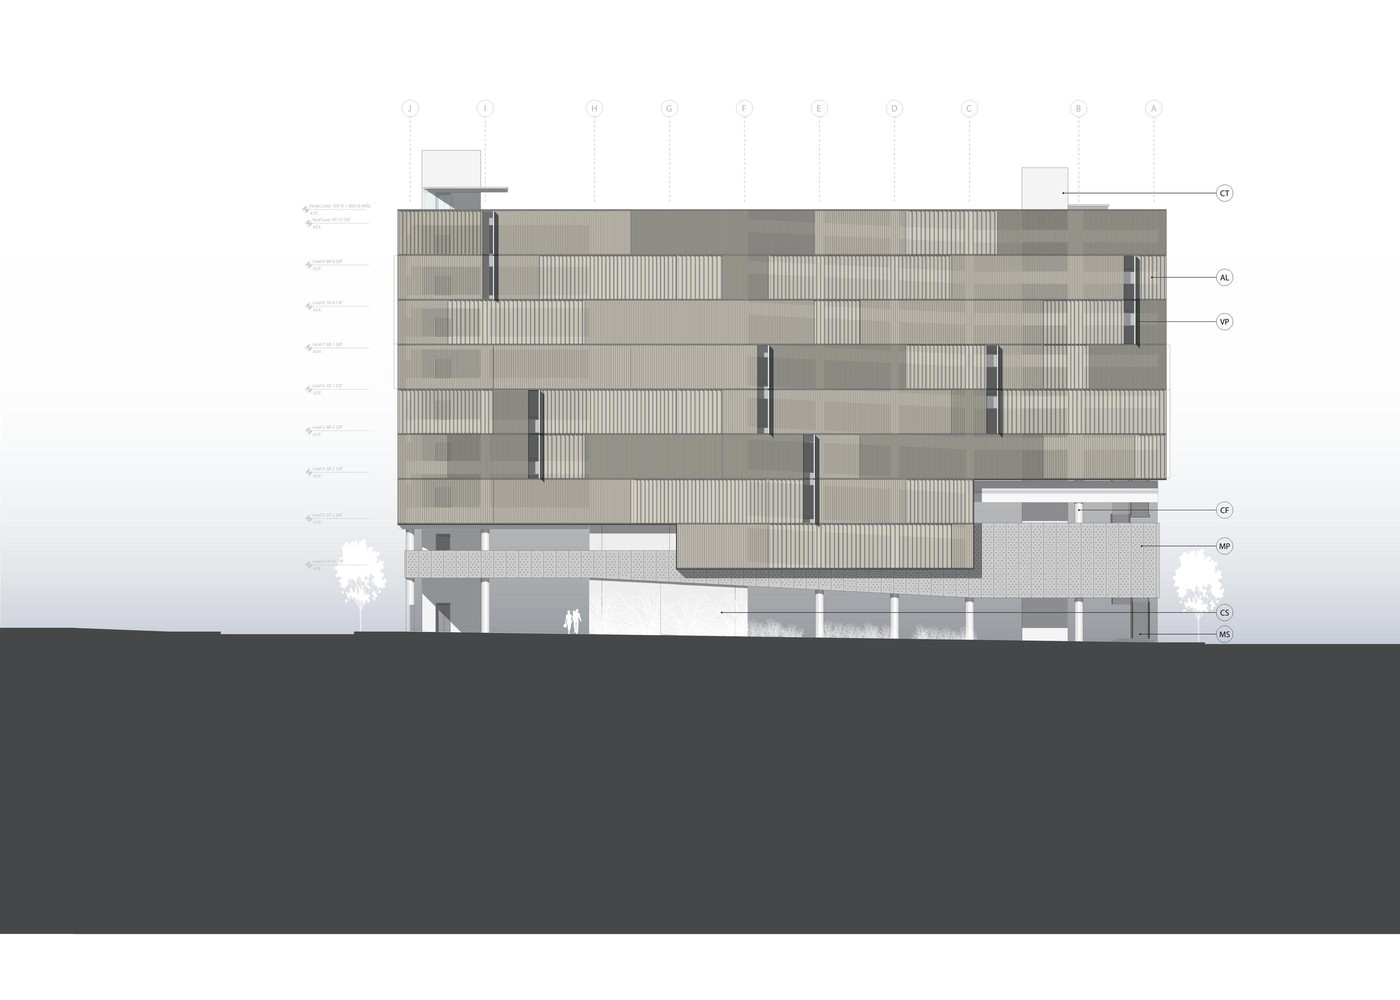 Gallery of UCSF Mission Bay Parking Structure / WRNS Studio - 26